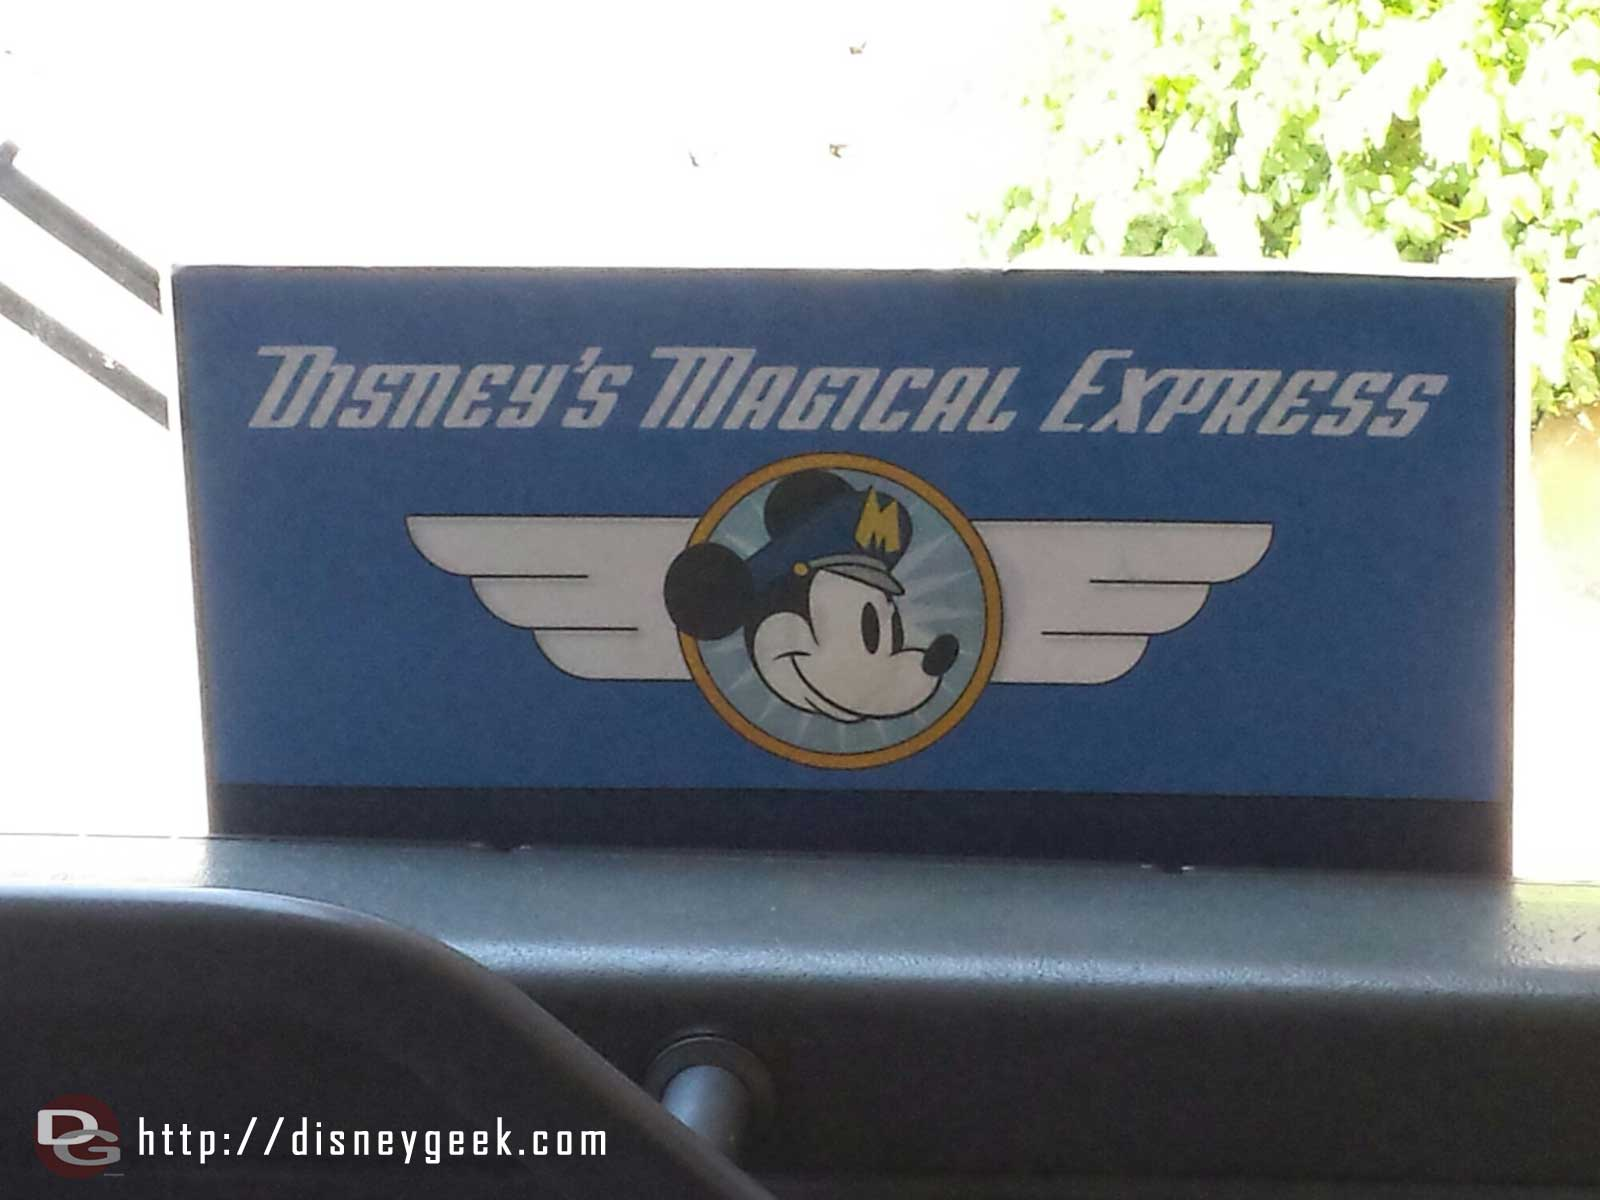 Time to head for the airport and home on Disney's Magical Express